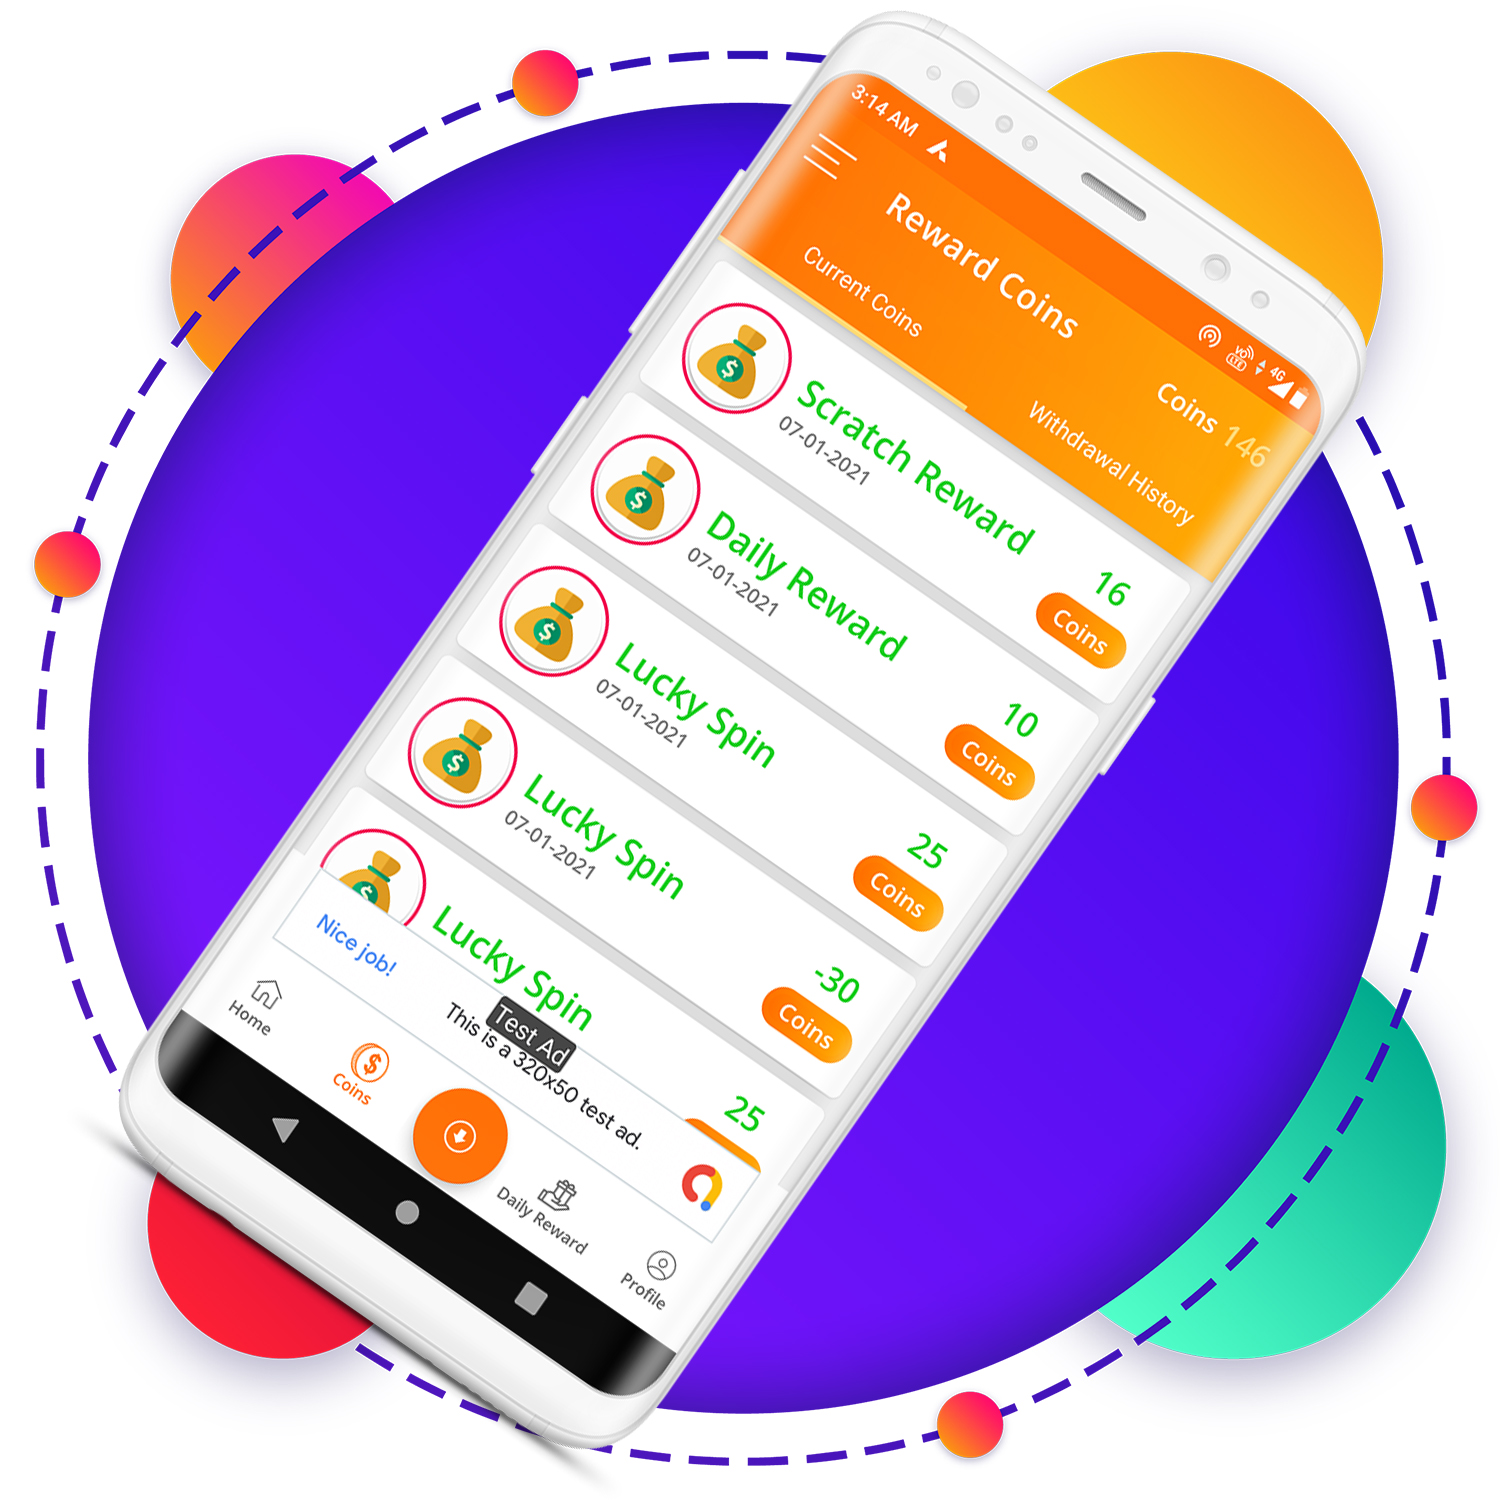 QuickCash All In One Money Earning Android App + Games + WhatsApp Tools + Earning System Admin Panel - 4